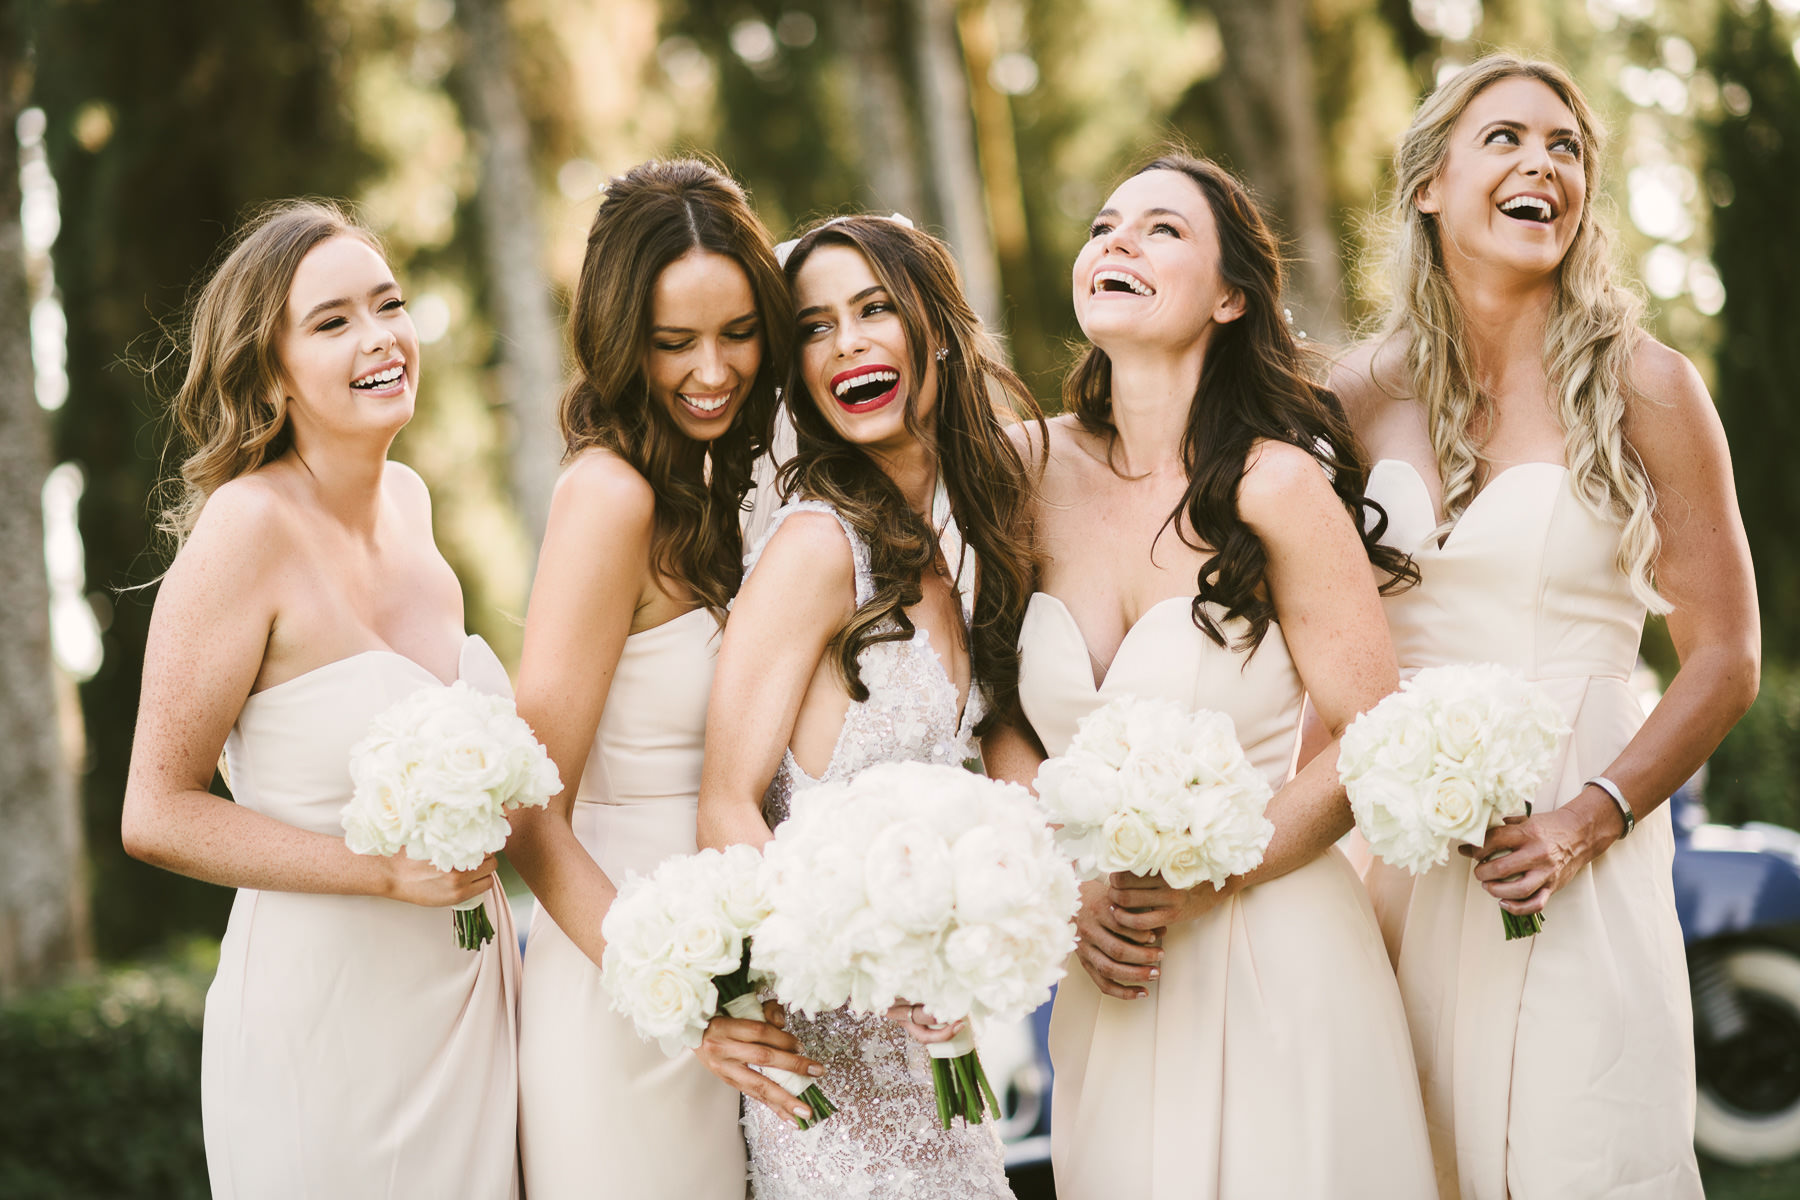 Bride Emily with lovely bridesmaids. Destination wedding in Tuscany countryside near Panzano in Chianti.